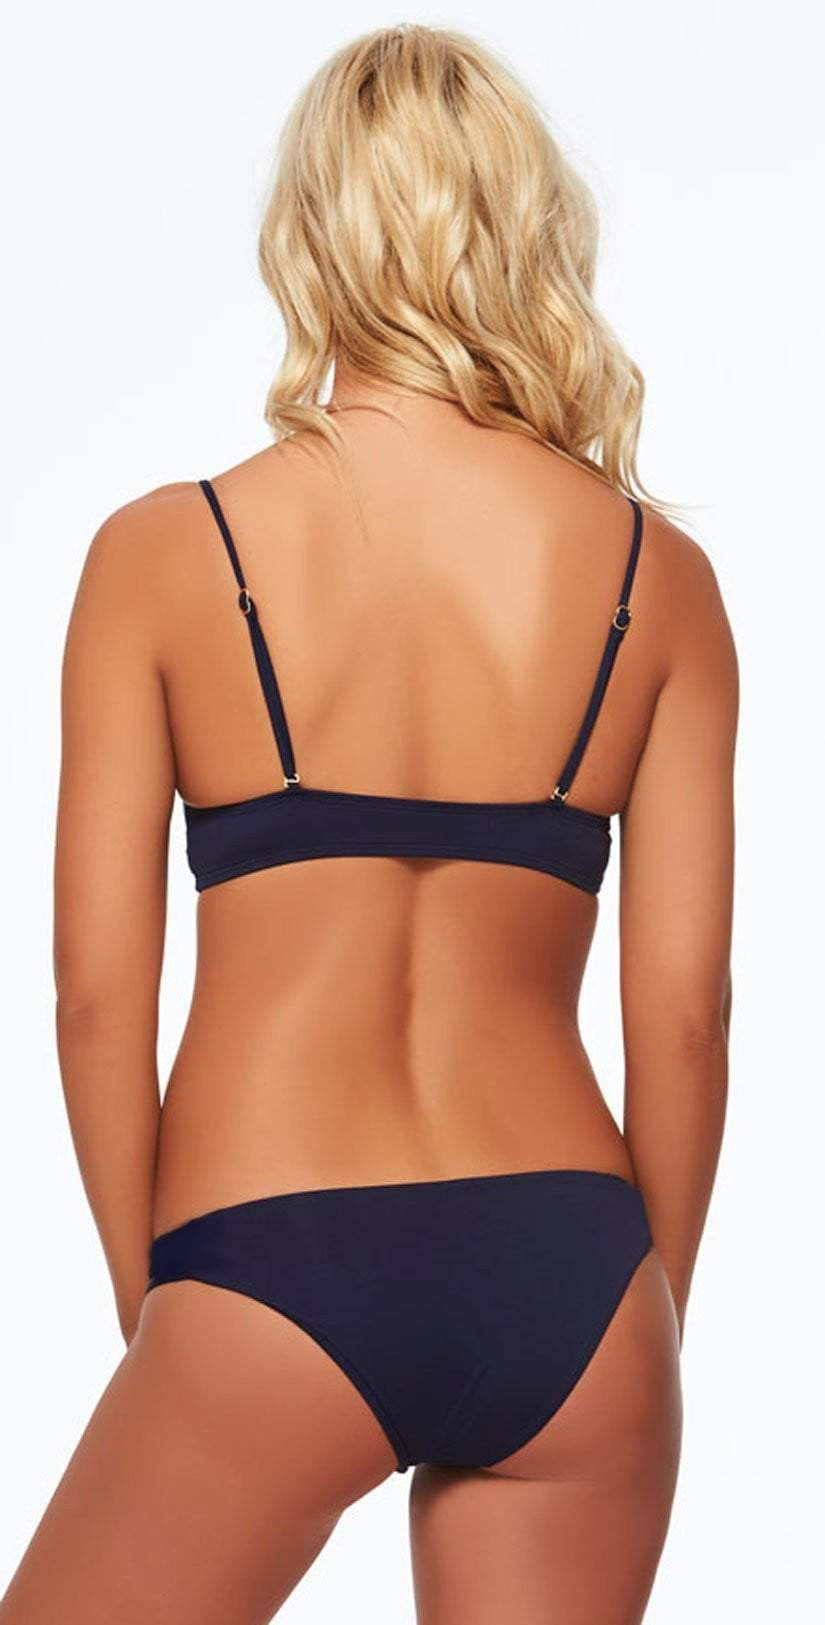 L Space Jaime Top in Midnight Blue LSJAT15-MDB: